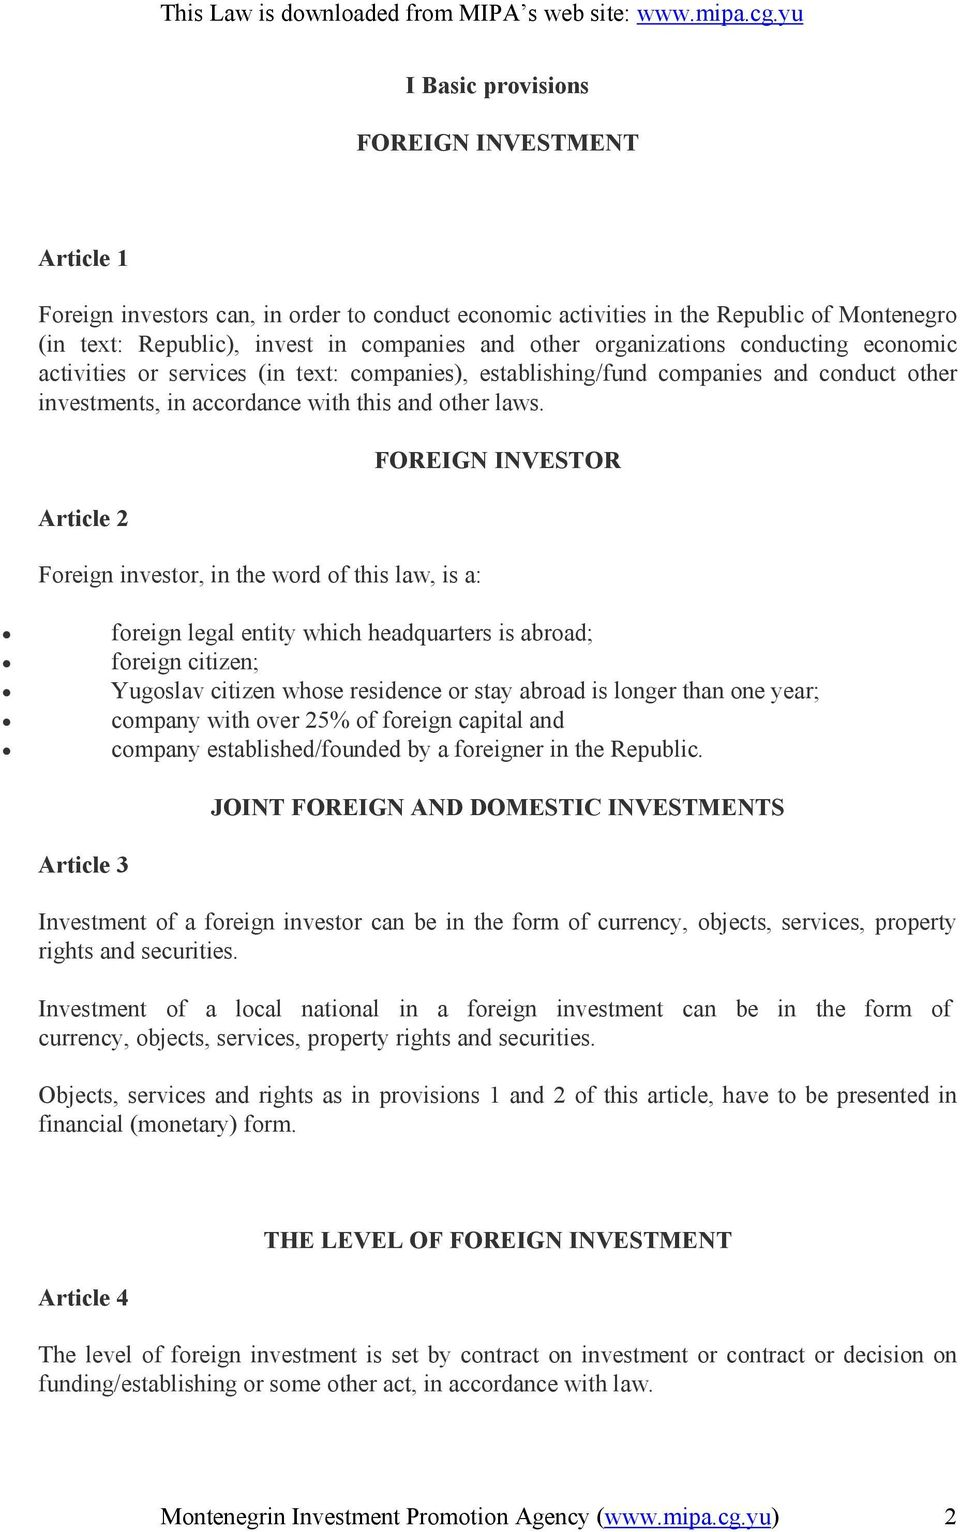 Article 2 Foreign investor, in the word of this law, is a: FOREIGN INVESTOR foreign legal entity which headquarters is abroad; foreign citizen; Yugoslav citizen whose residence or stay abroad is